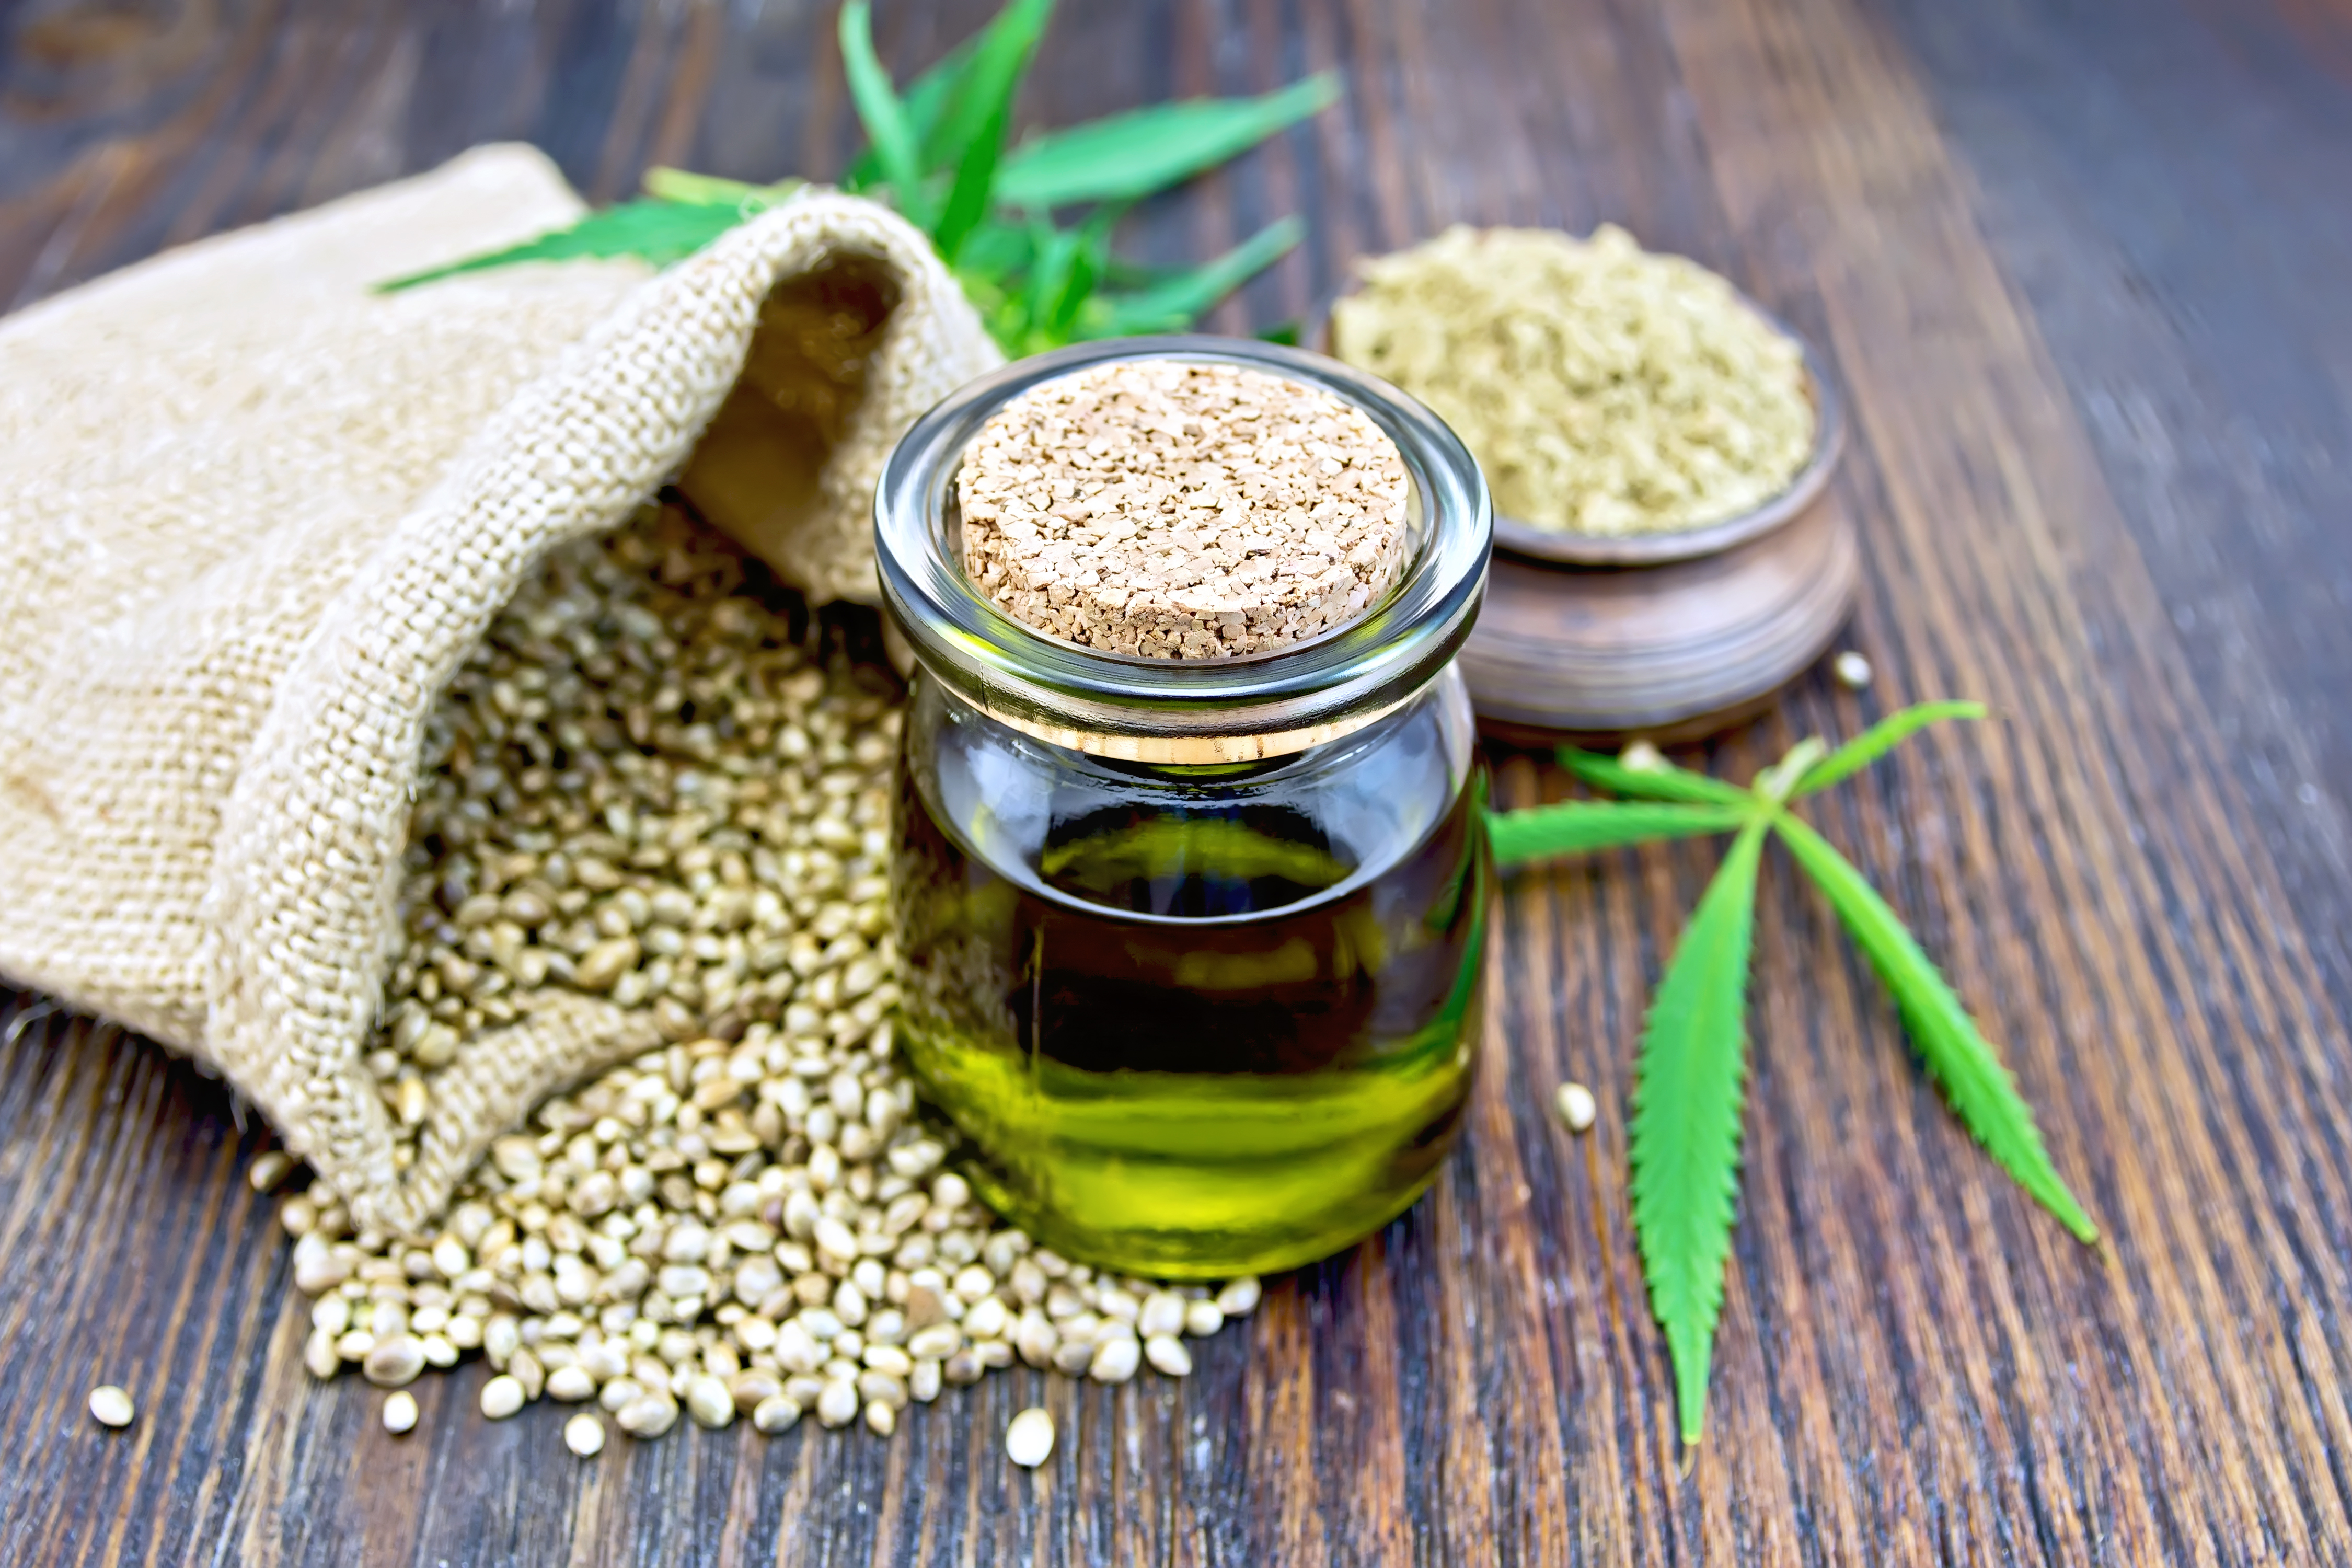 CBD oil sitting in a pile of hemp seeds, which will be used for medicinal purposes